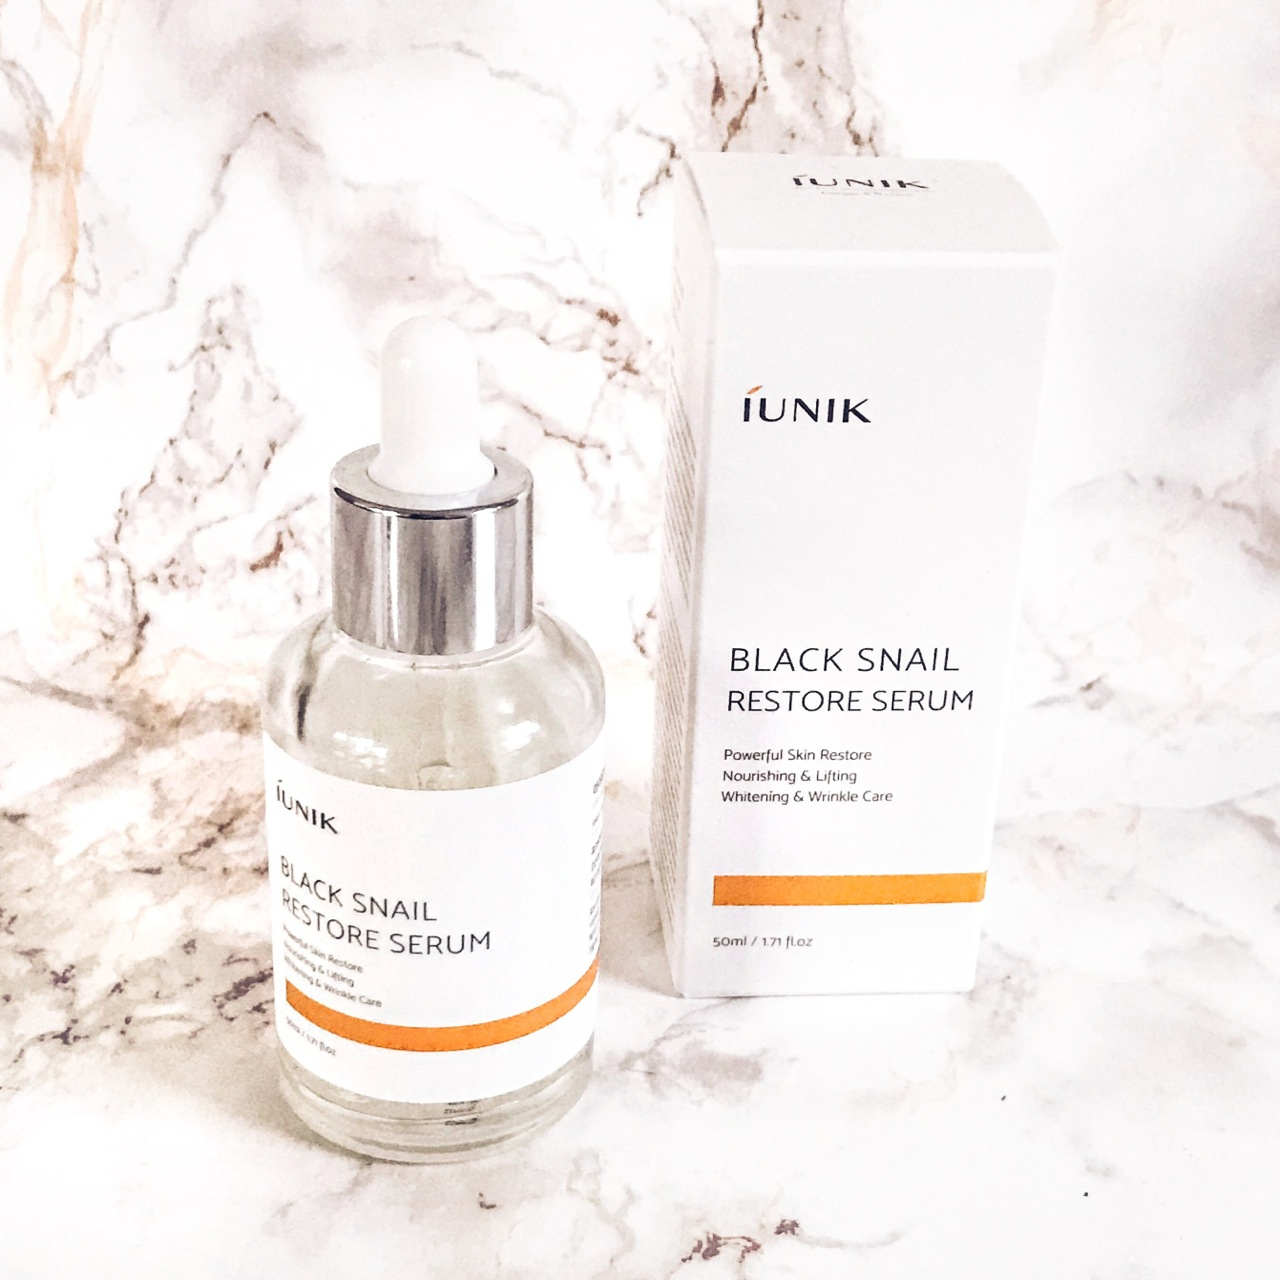 iUNIK Black Snail Restore Serum review